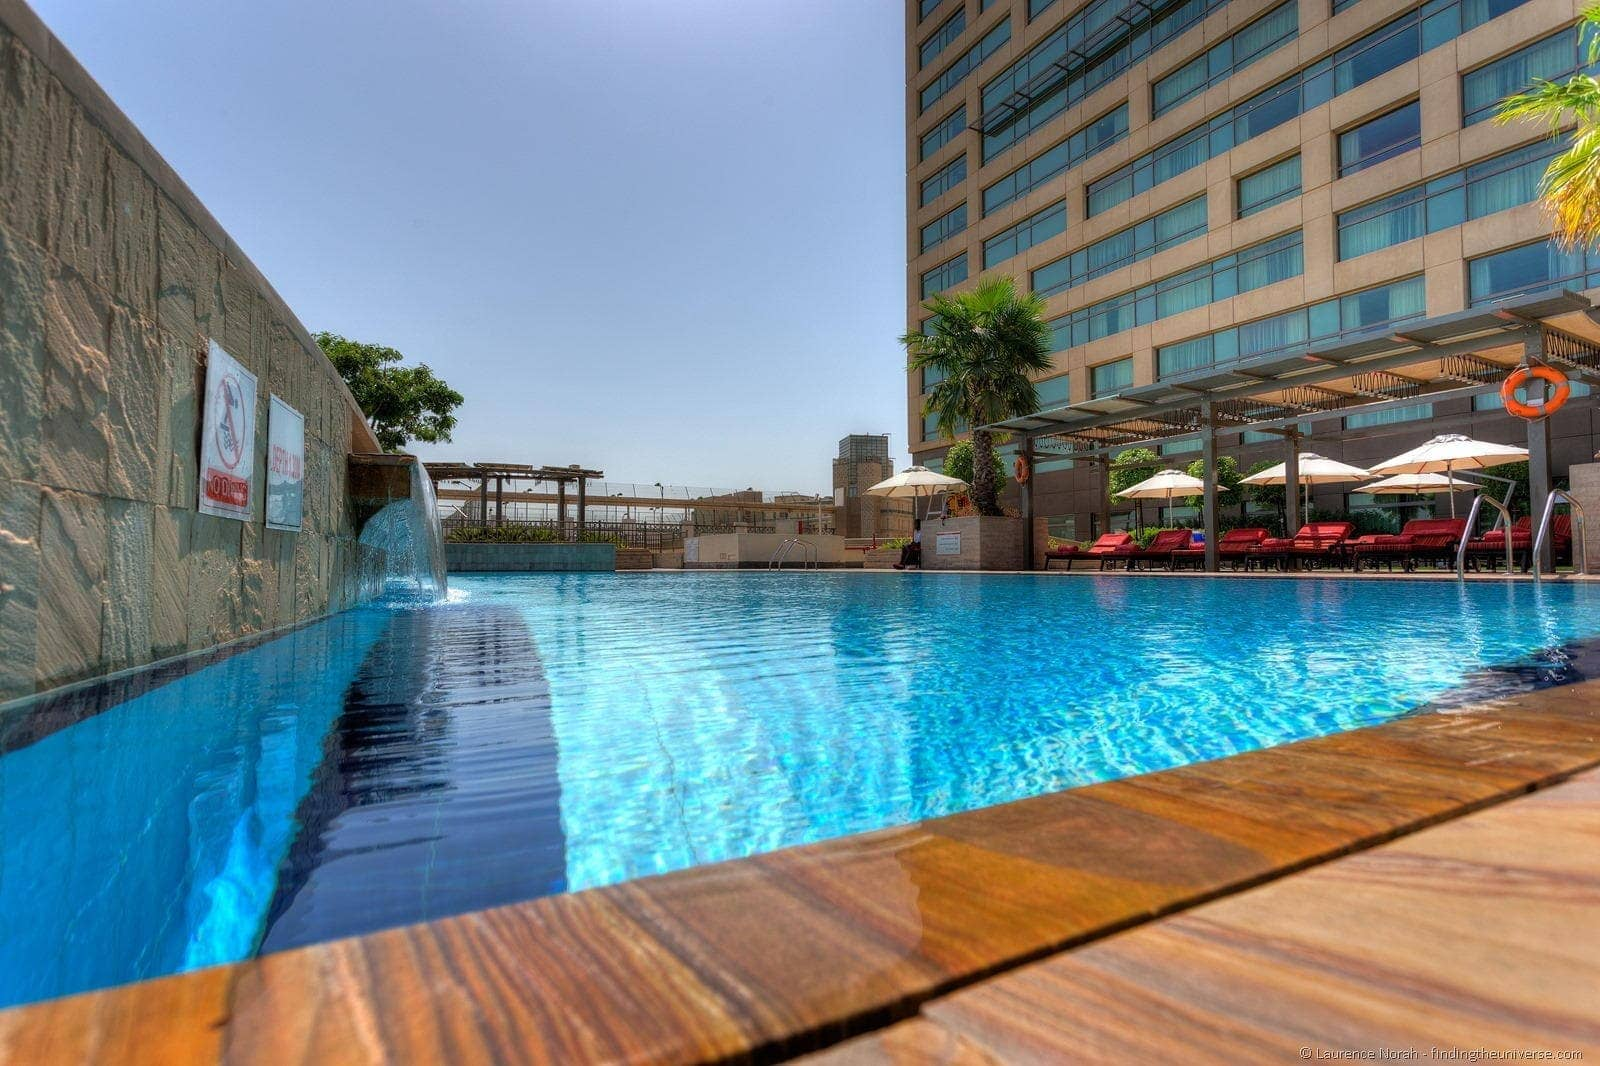 Rotana pool low angle daytime